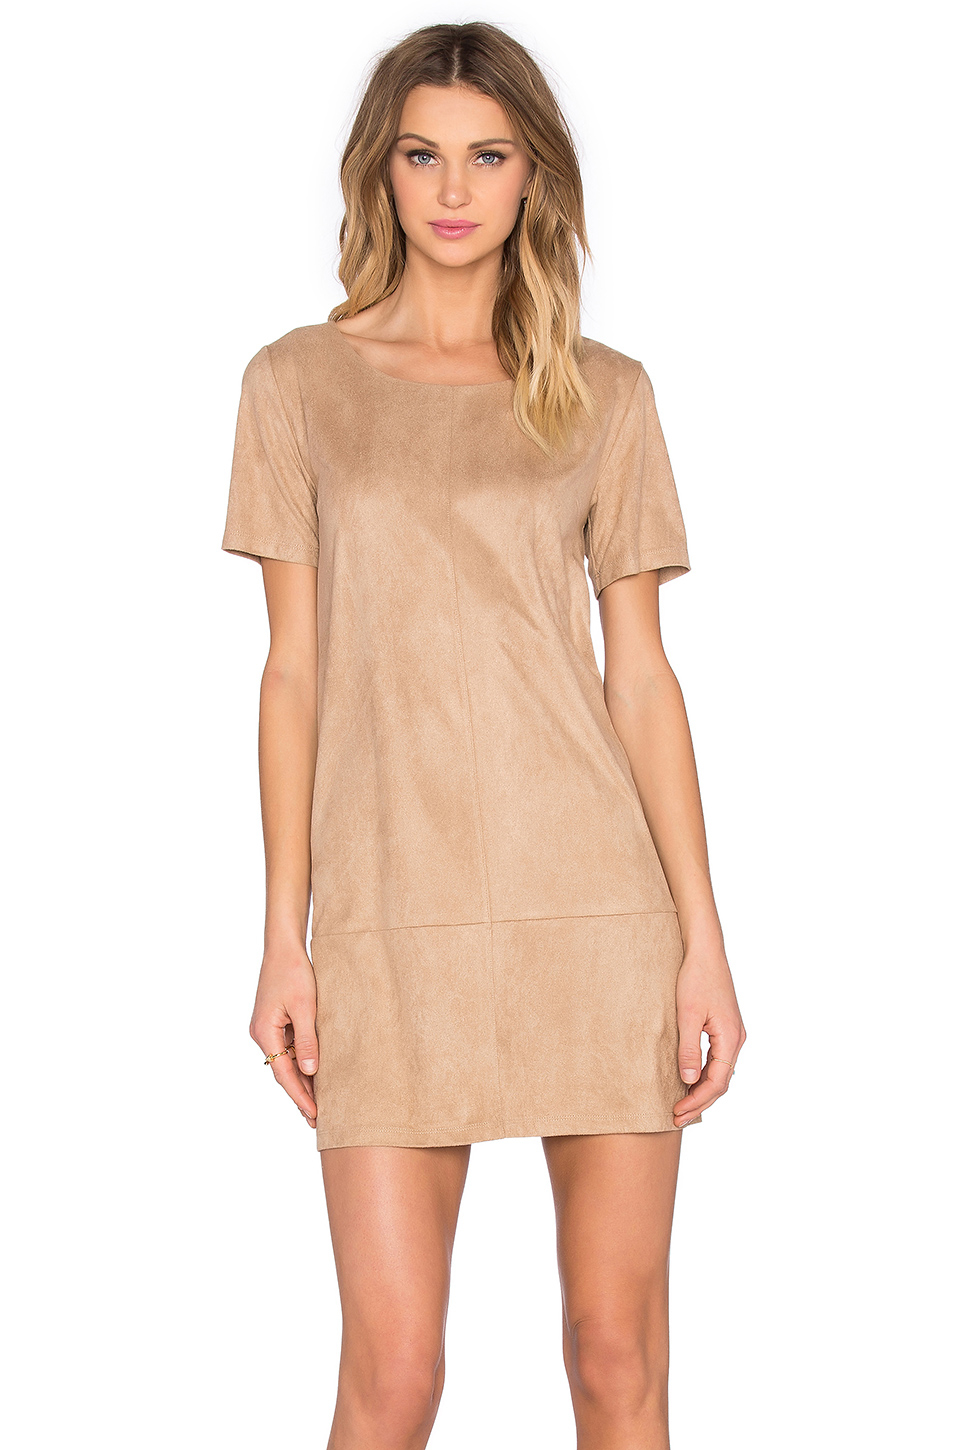 fec0e3d8484e Lyst - Bishop + Young Suede Shift Dress in Natural